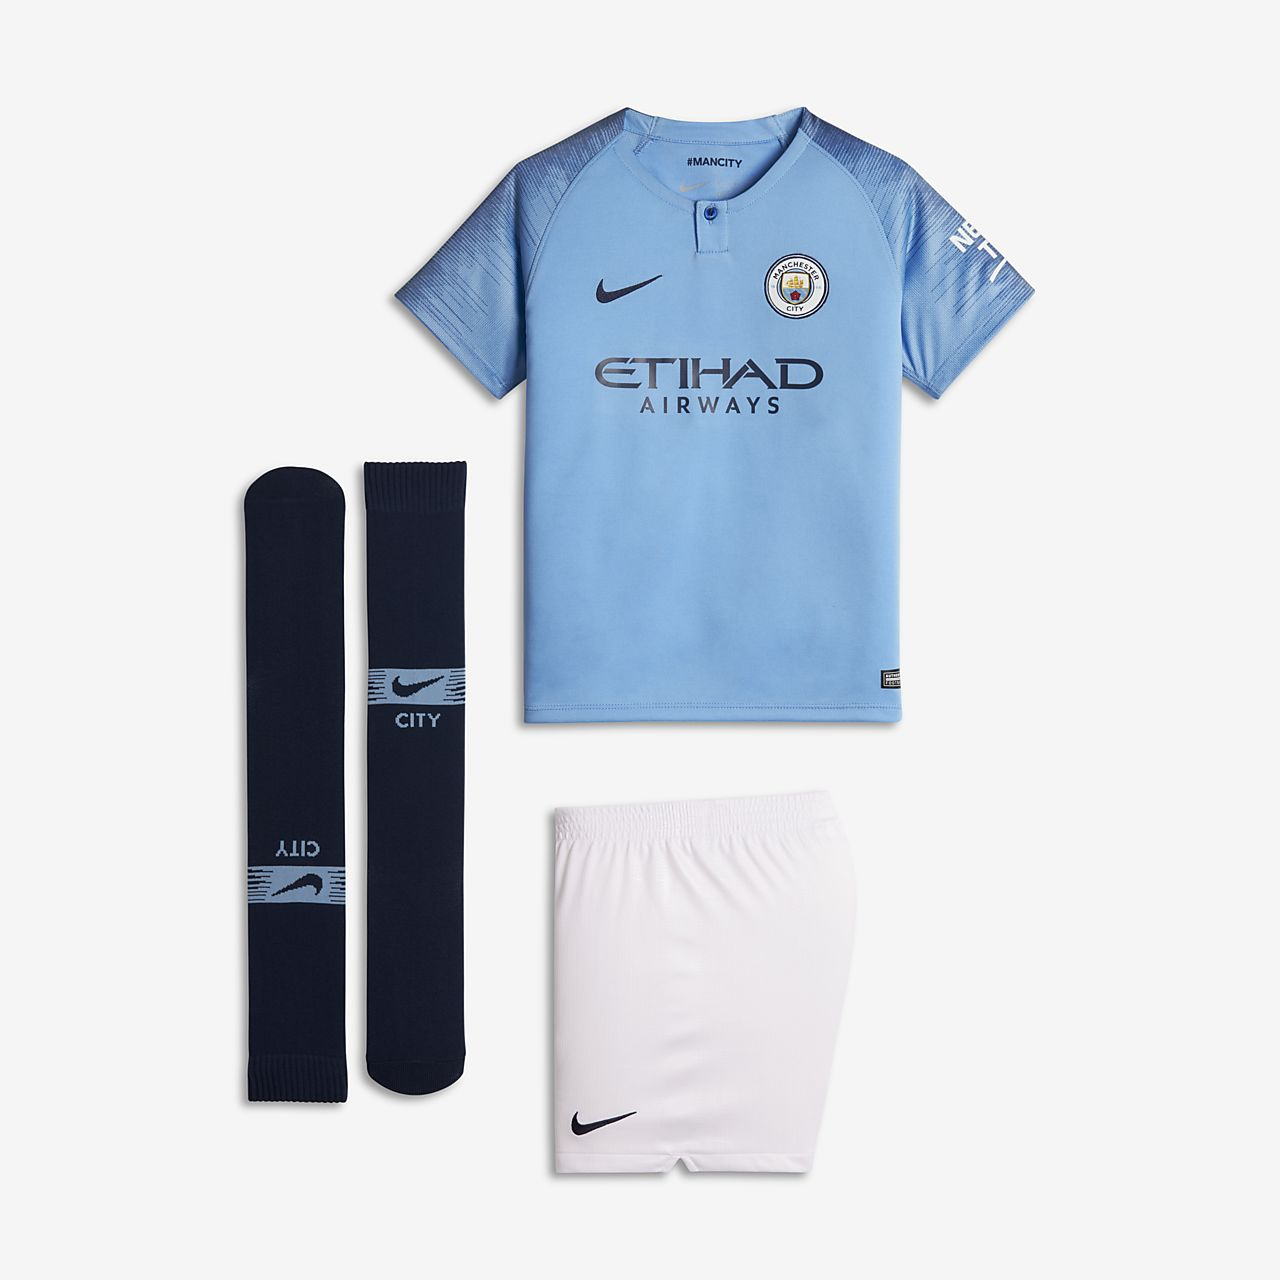 de135212c ... 2018/19 Manchester City FC Stadium Home Younger Kids' Football Kit